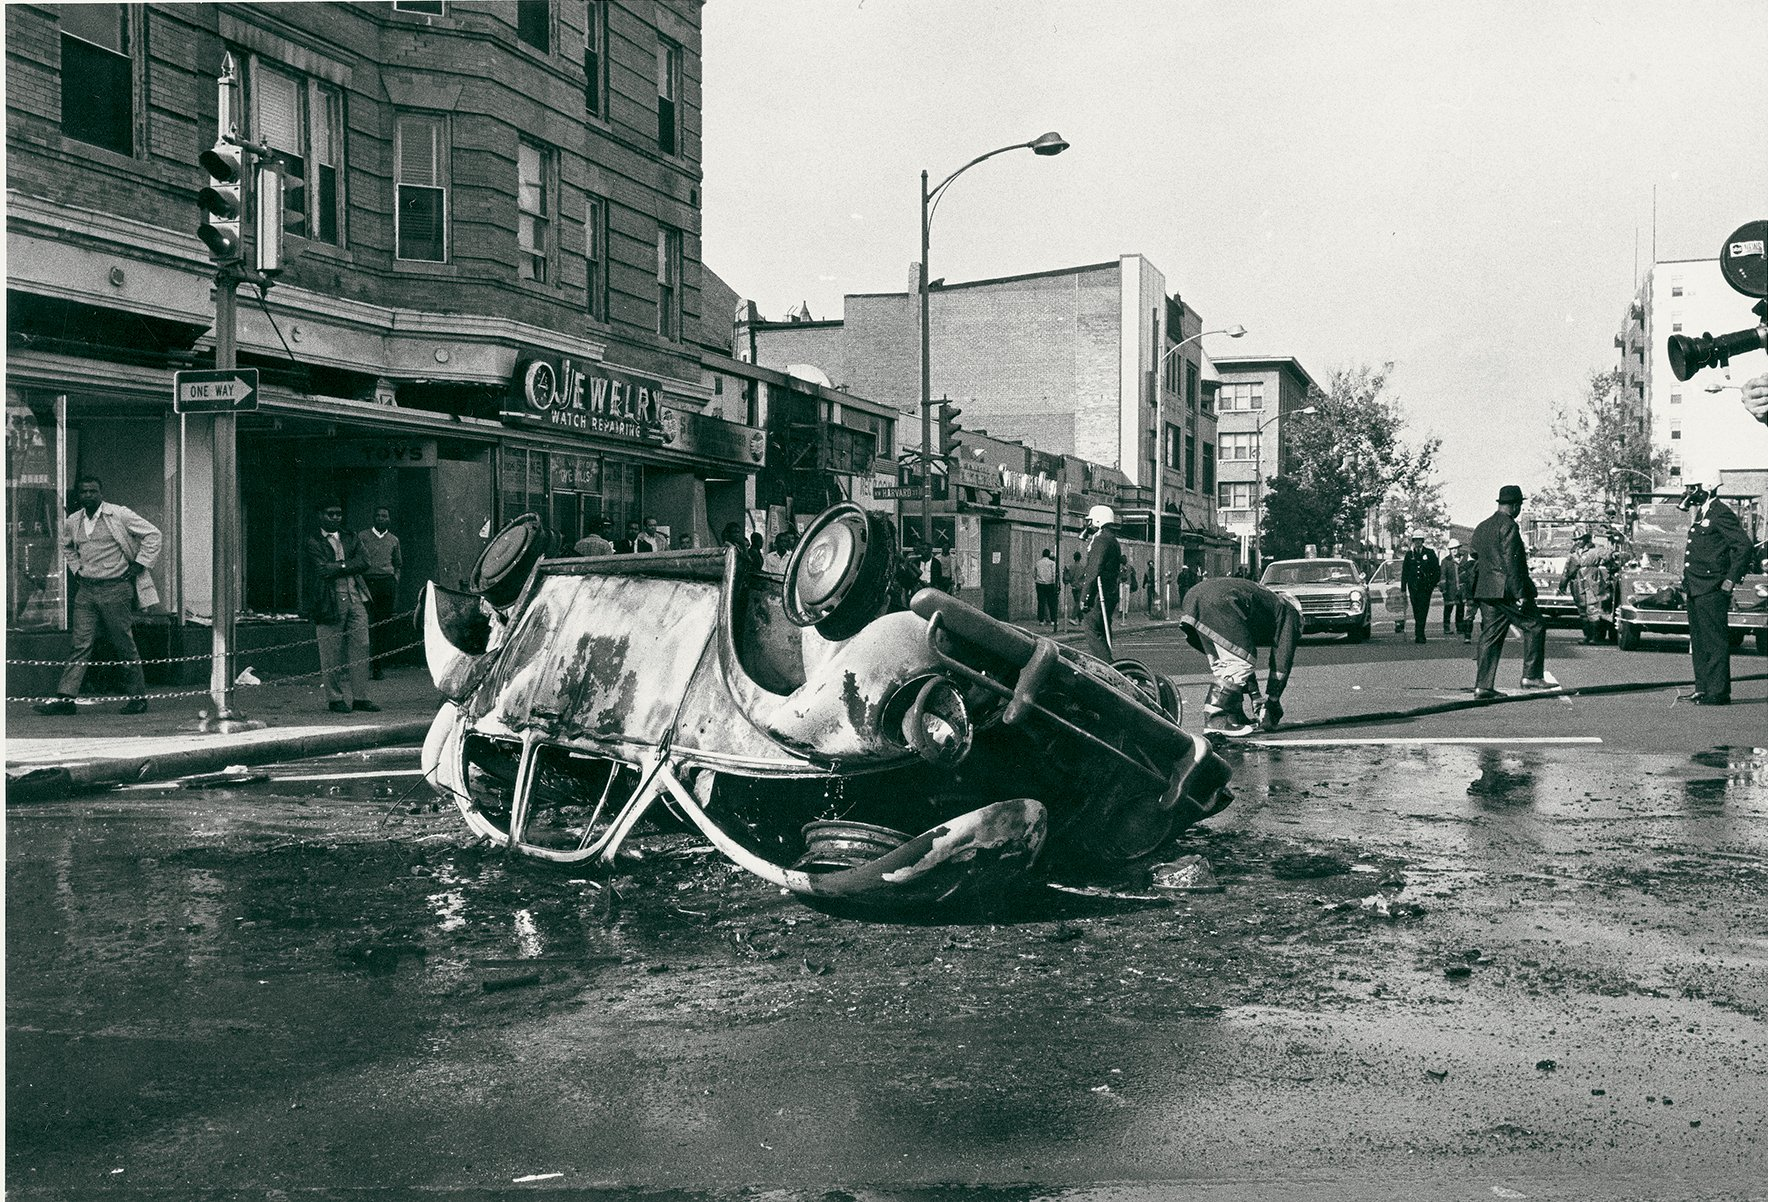 The city remained tense well after the initial destruction and chaos, with clashes still bubbling up. A car that was torched by a crowd at 14th and Harvard in November 1968. Photograph by Washington Post. Reprinted with Permission of DC Public Library/Star Collection.